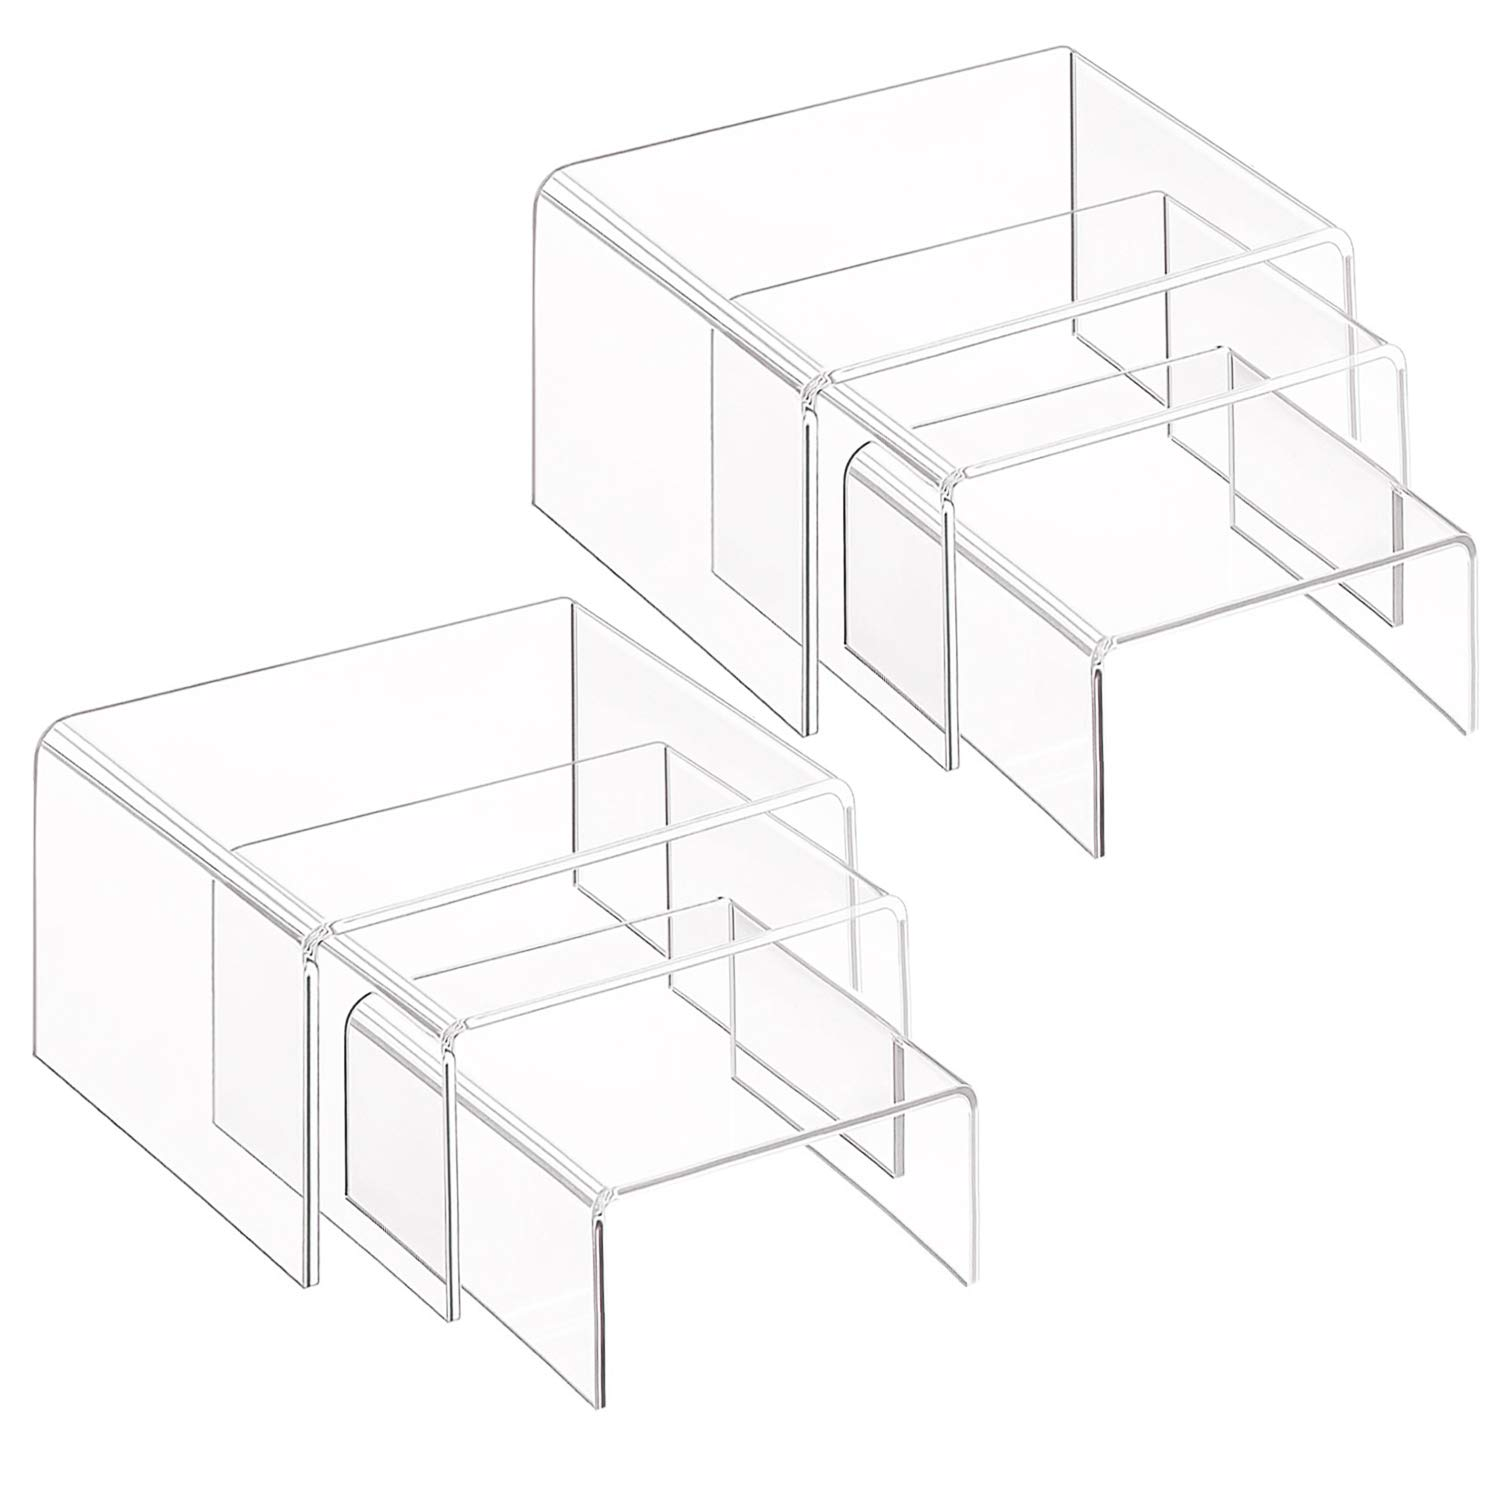 Clear Acrylic Display Risers, 2 Sets of 3 Showcase Shelf for Figures, Buffets, Cupcakes and Jewelry Display Stands, with Sticky Protective Film